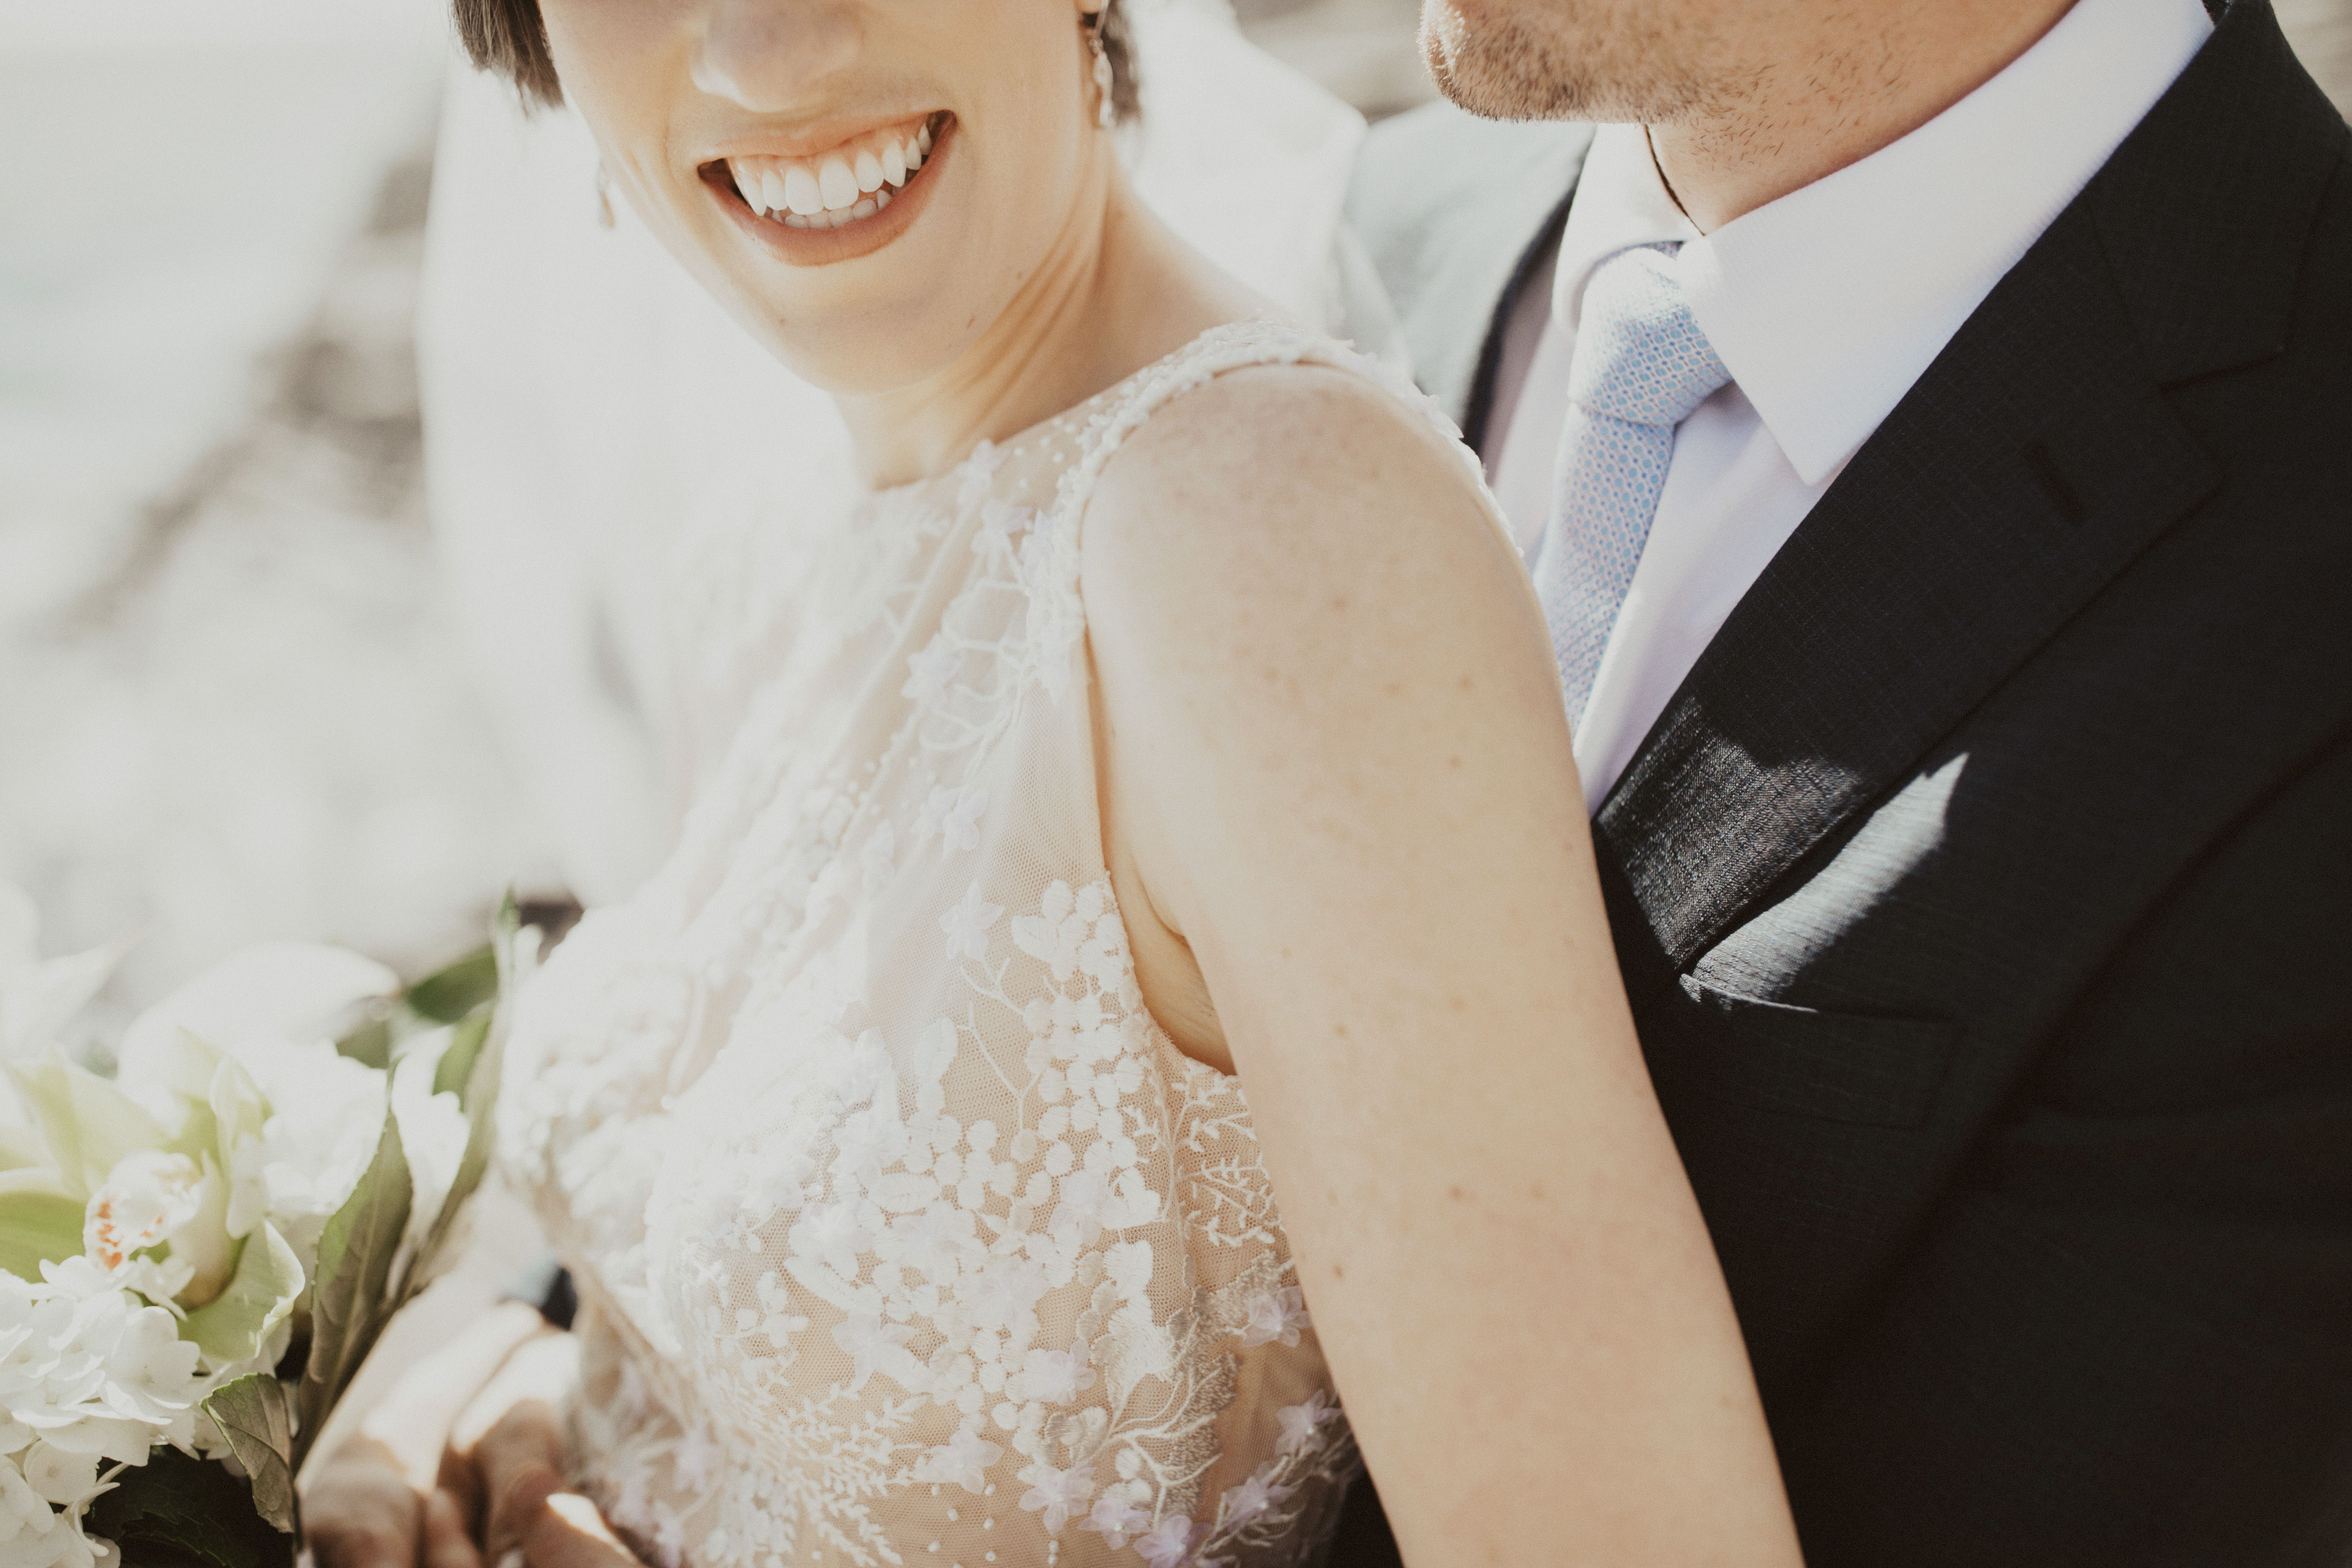 Handmade wedding dress  Check out the detailing on this Katie Lee Custom wedding dress